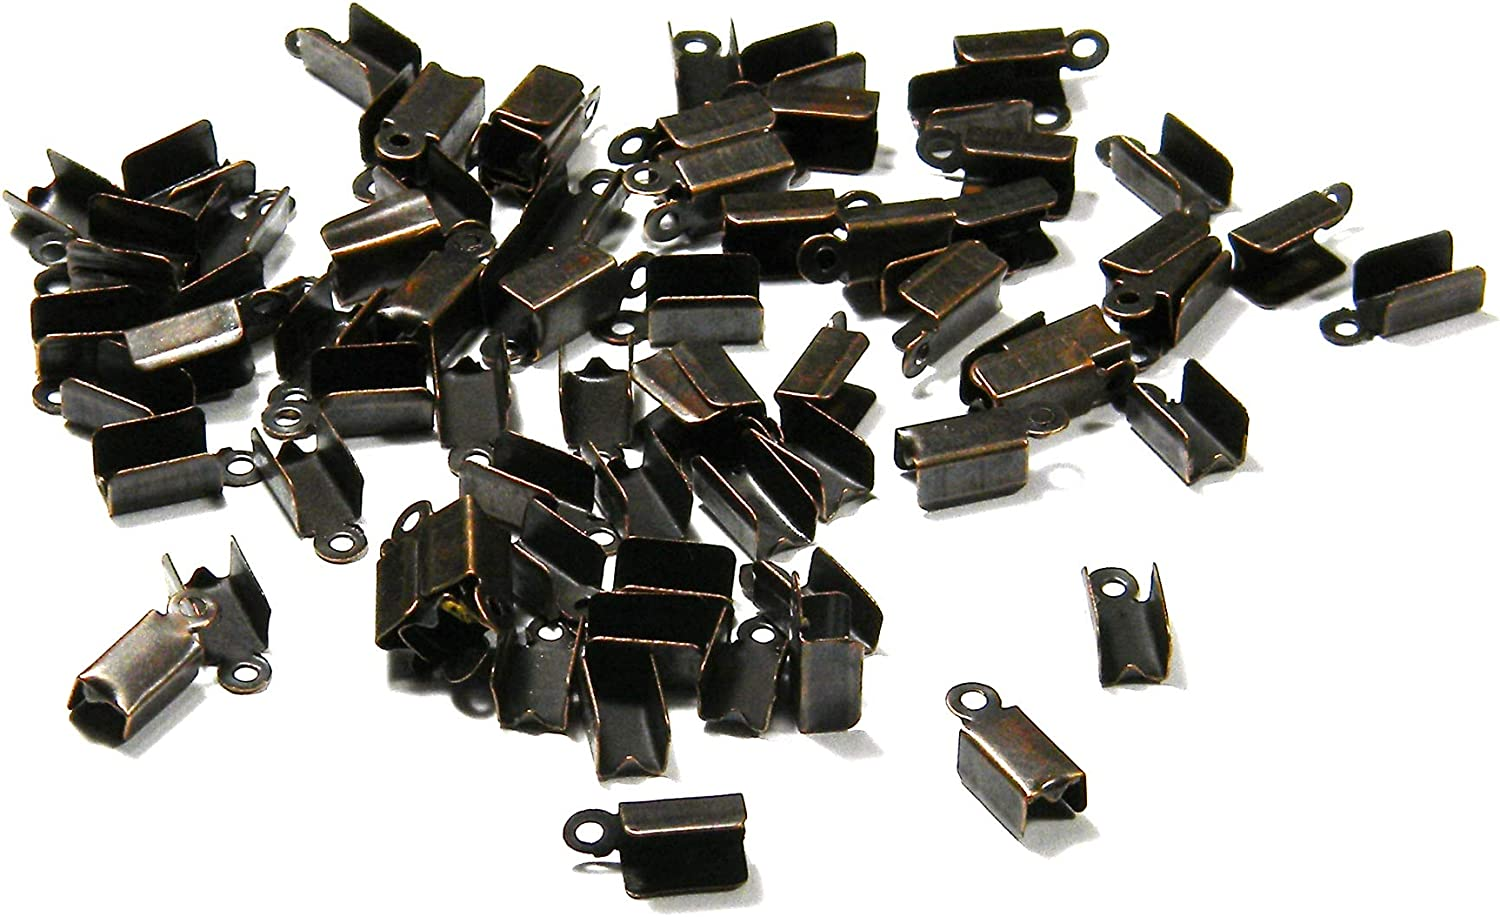 100 Big Antique Copper Fold Style Crimp Tube Bead Tips with Hole for Jewelry